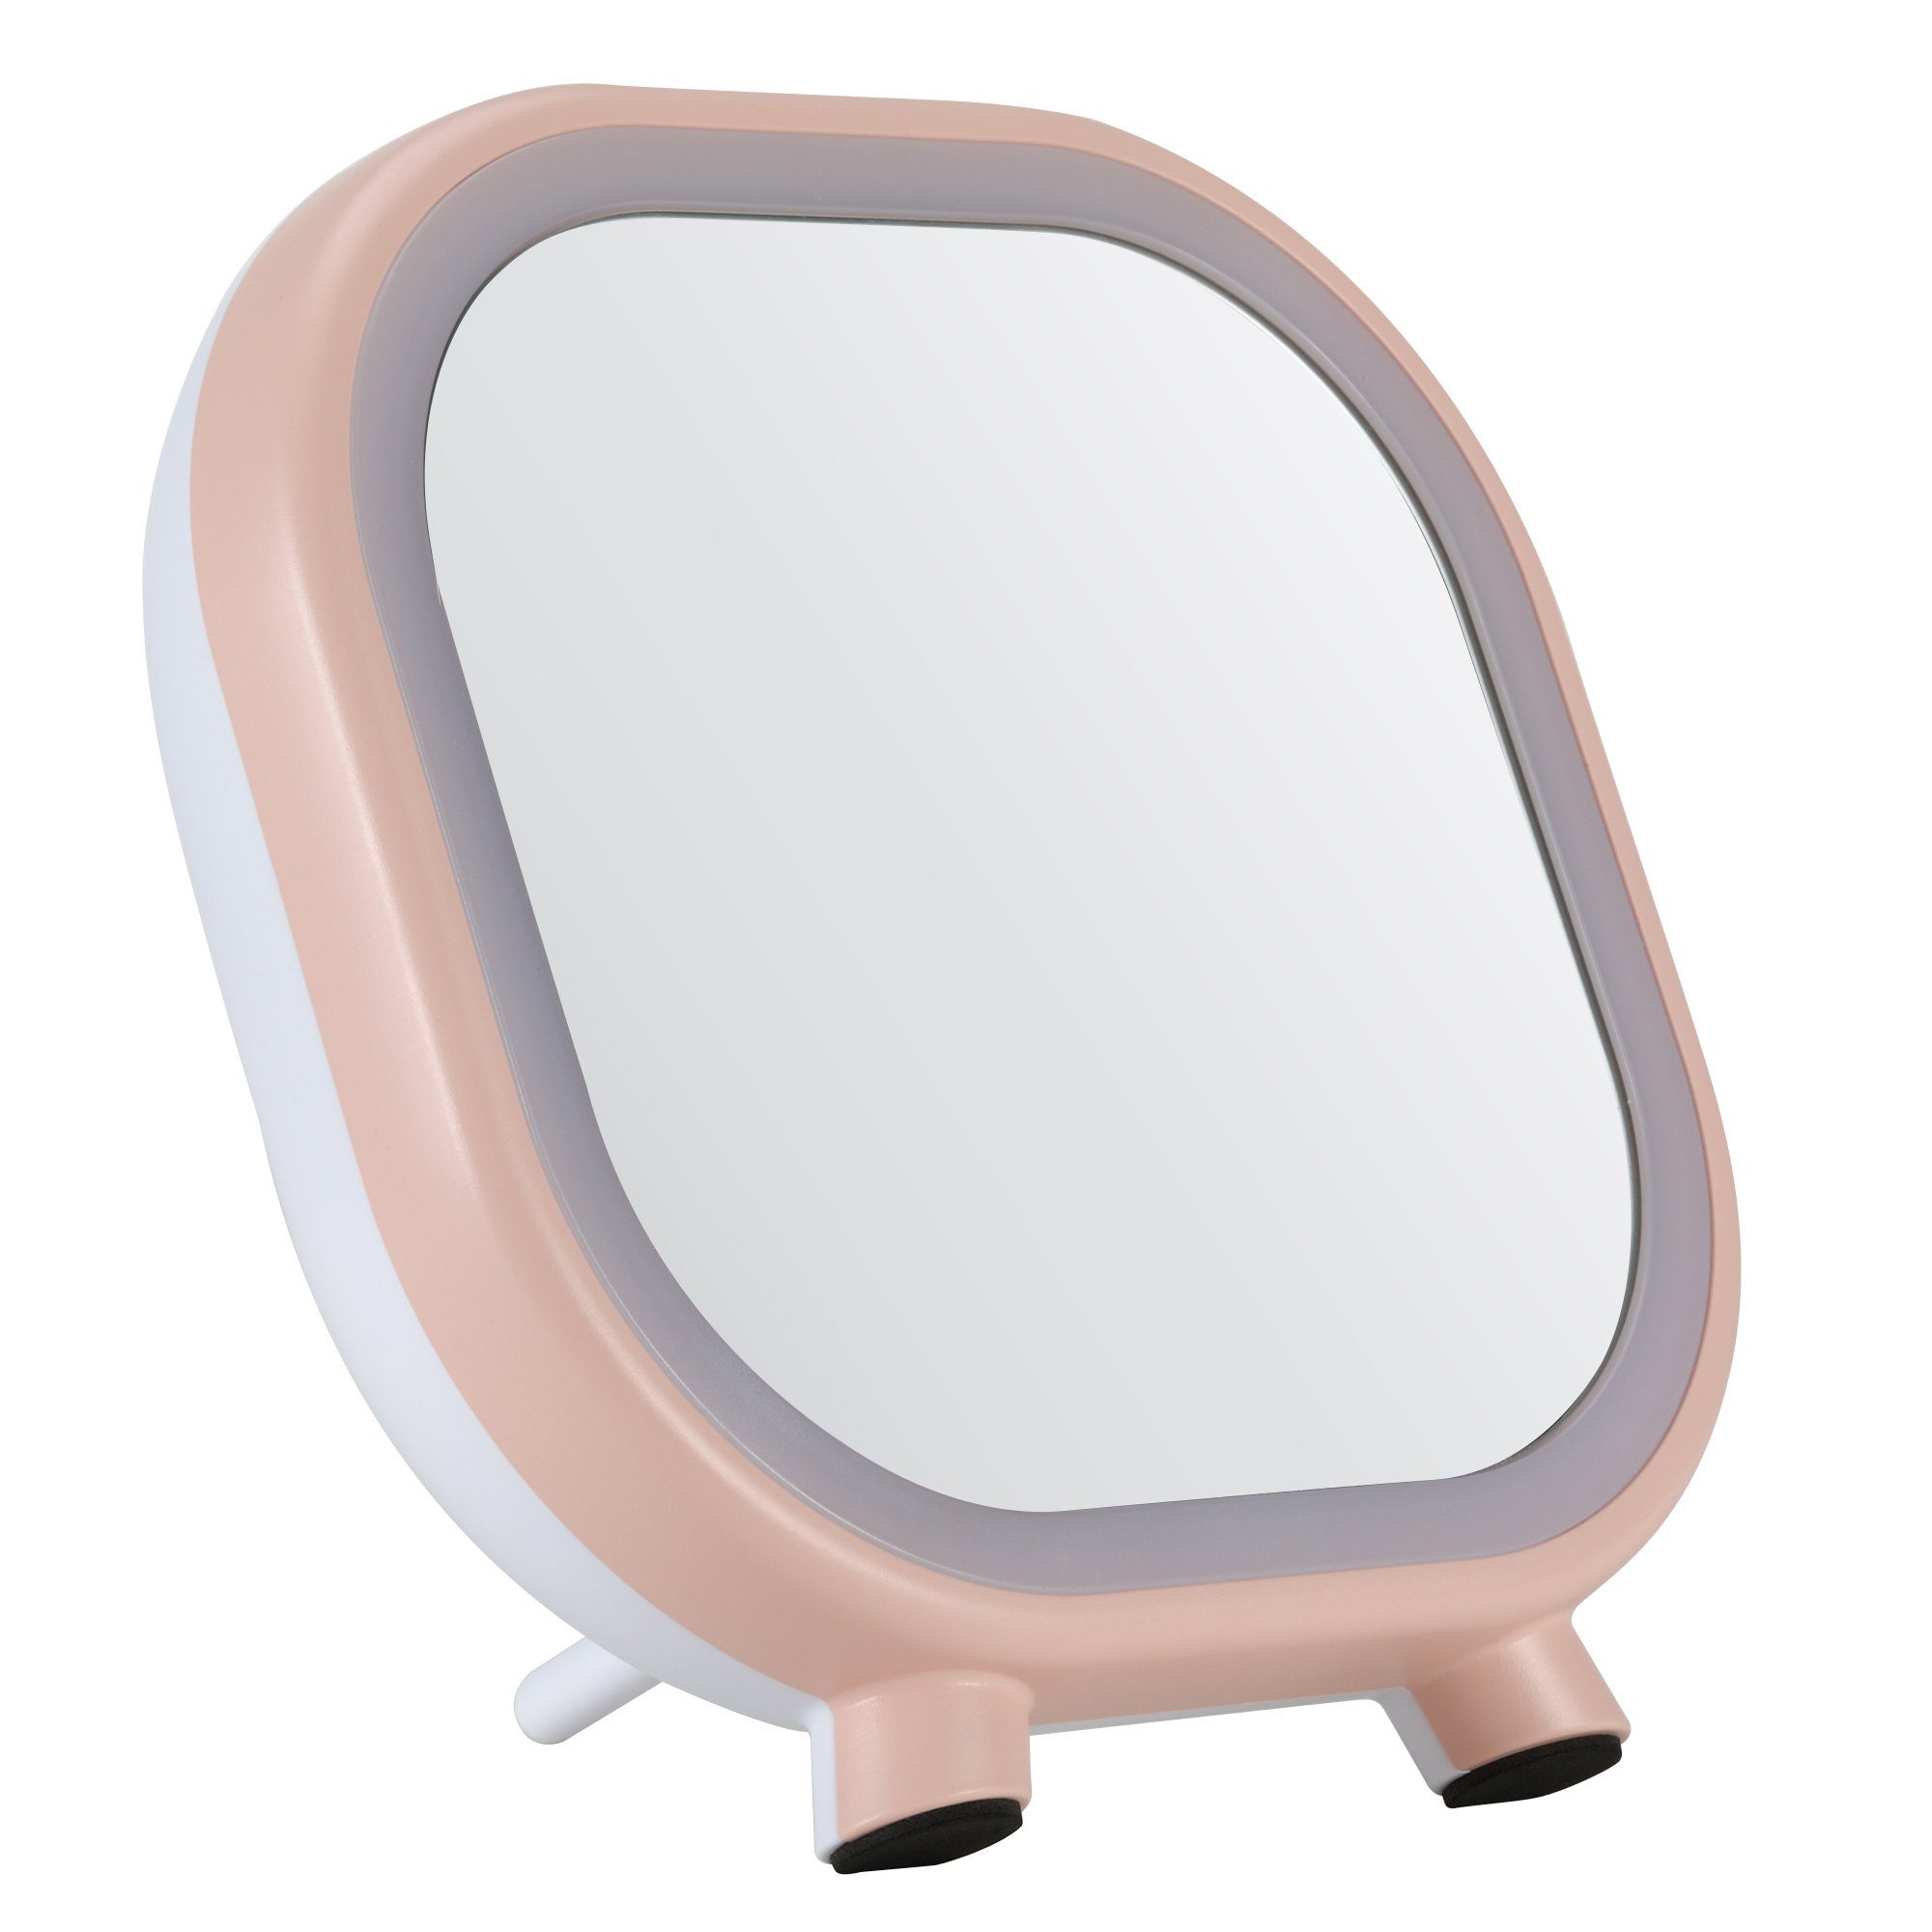 LED Makeup mirror Bluetooth speaker is a  for Mobile phones, Tablet computers, Laptops and other multi-functional Portable makeup mirror. Built-in battery, USB charging